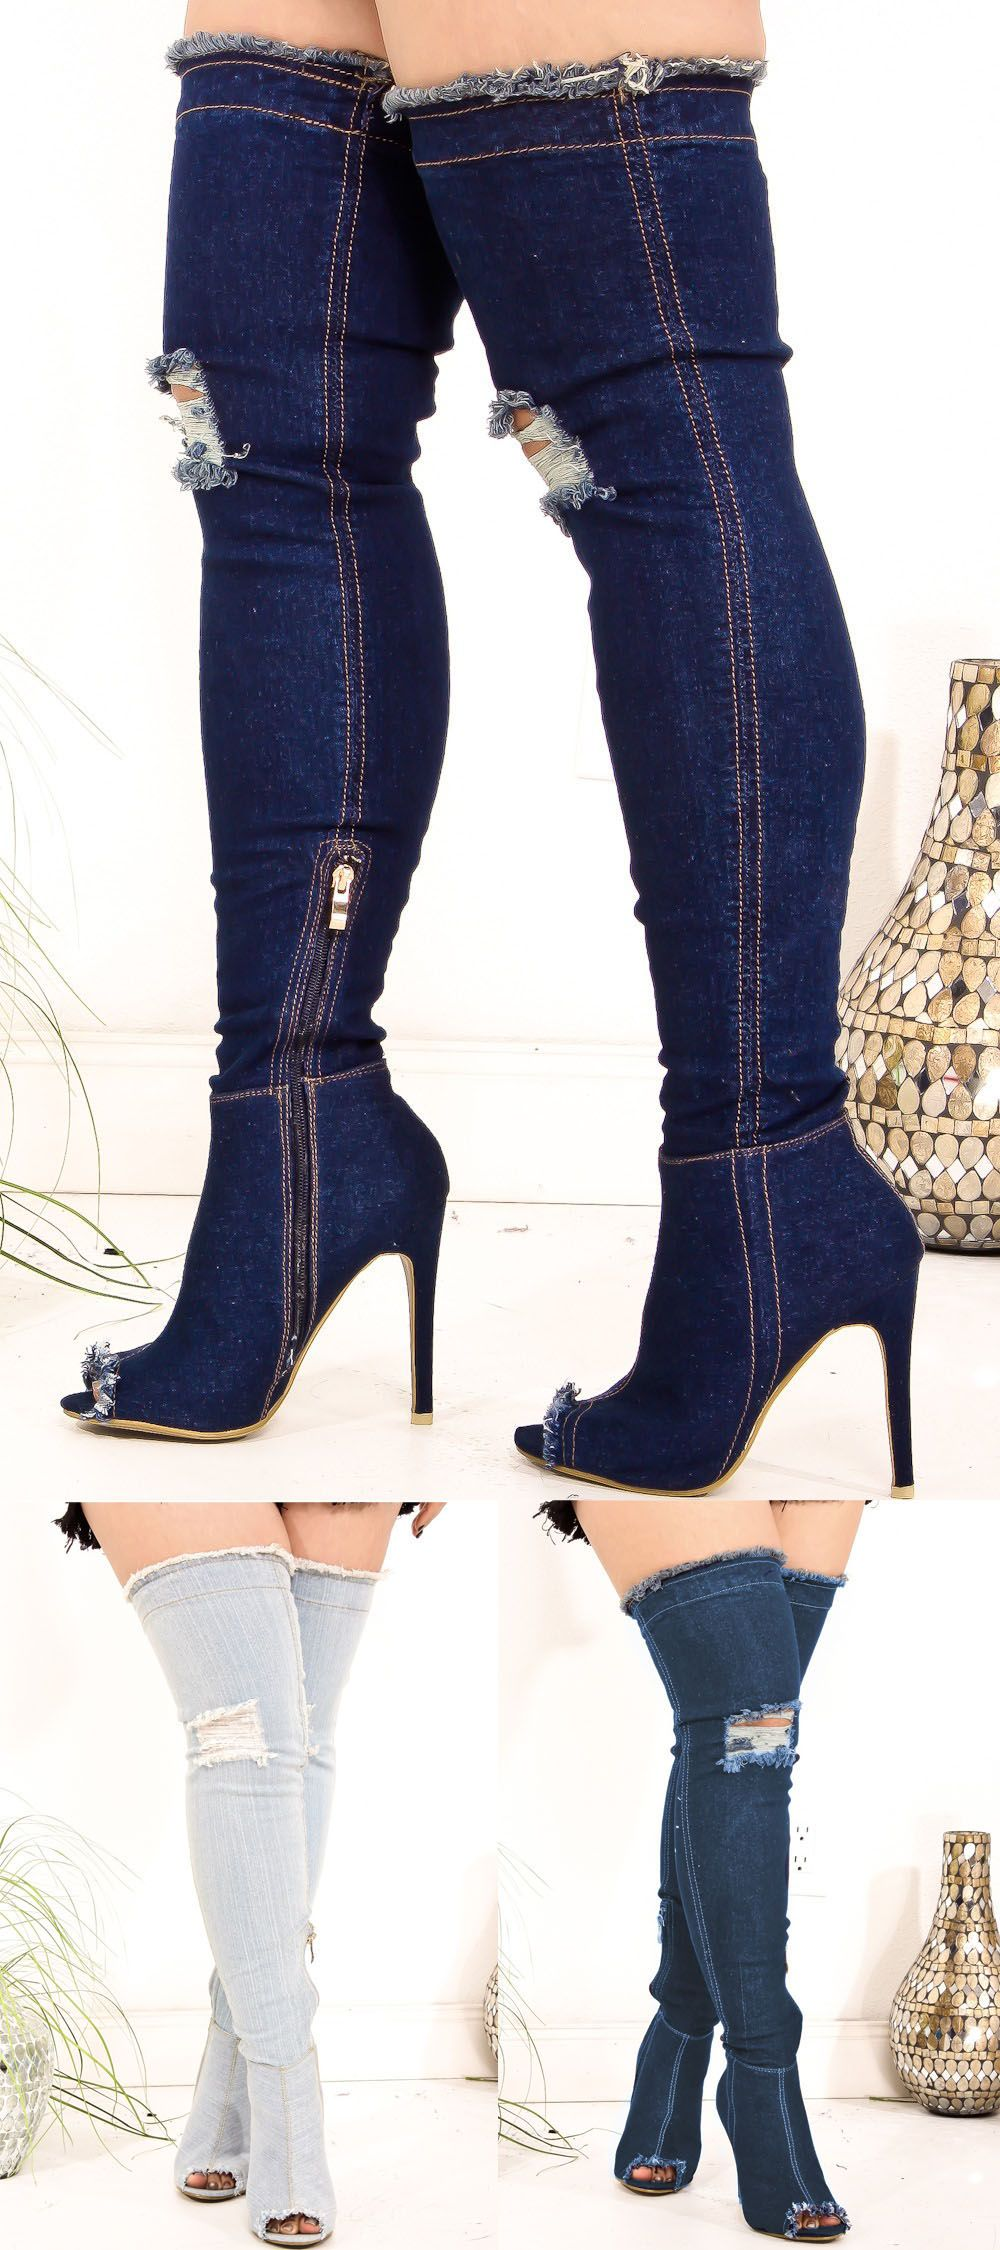 Thigh A High Design Side Look Boots Denim Peep Toe Feature These UdIwAxqHI